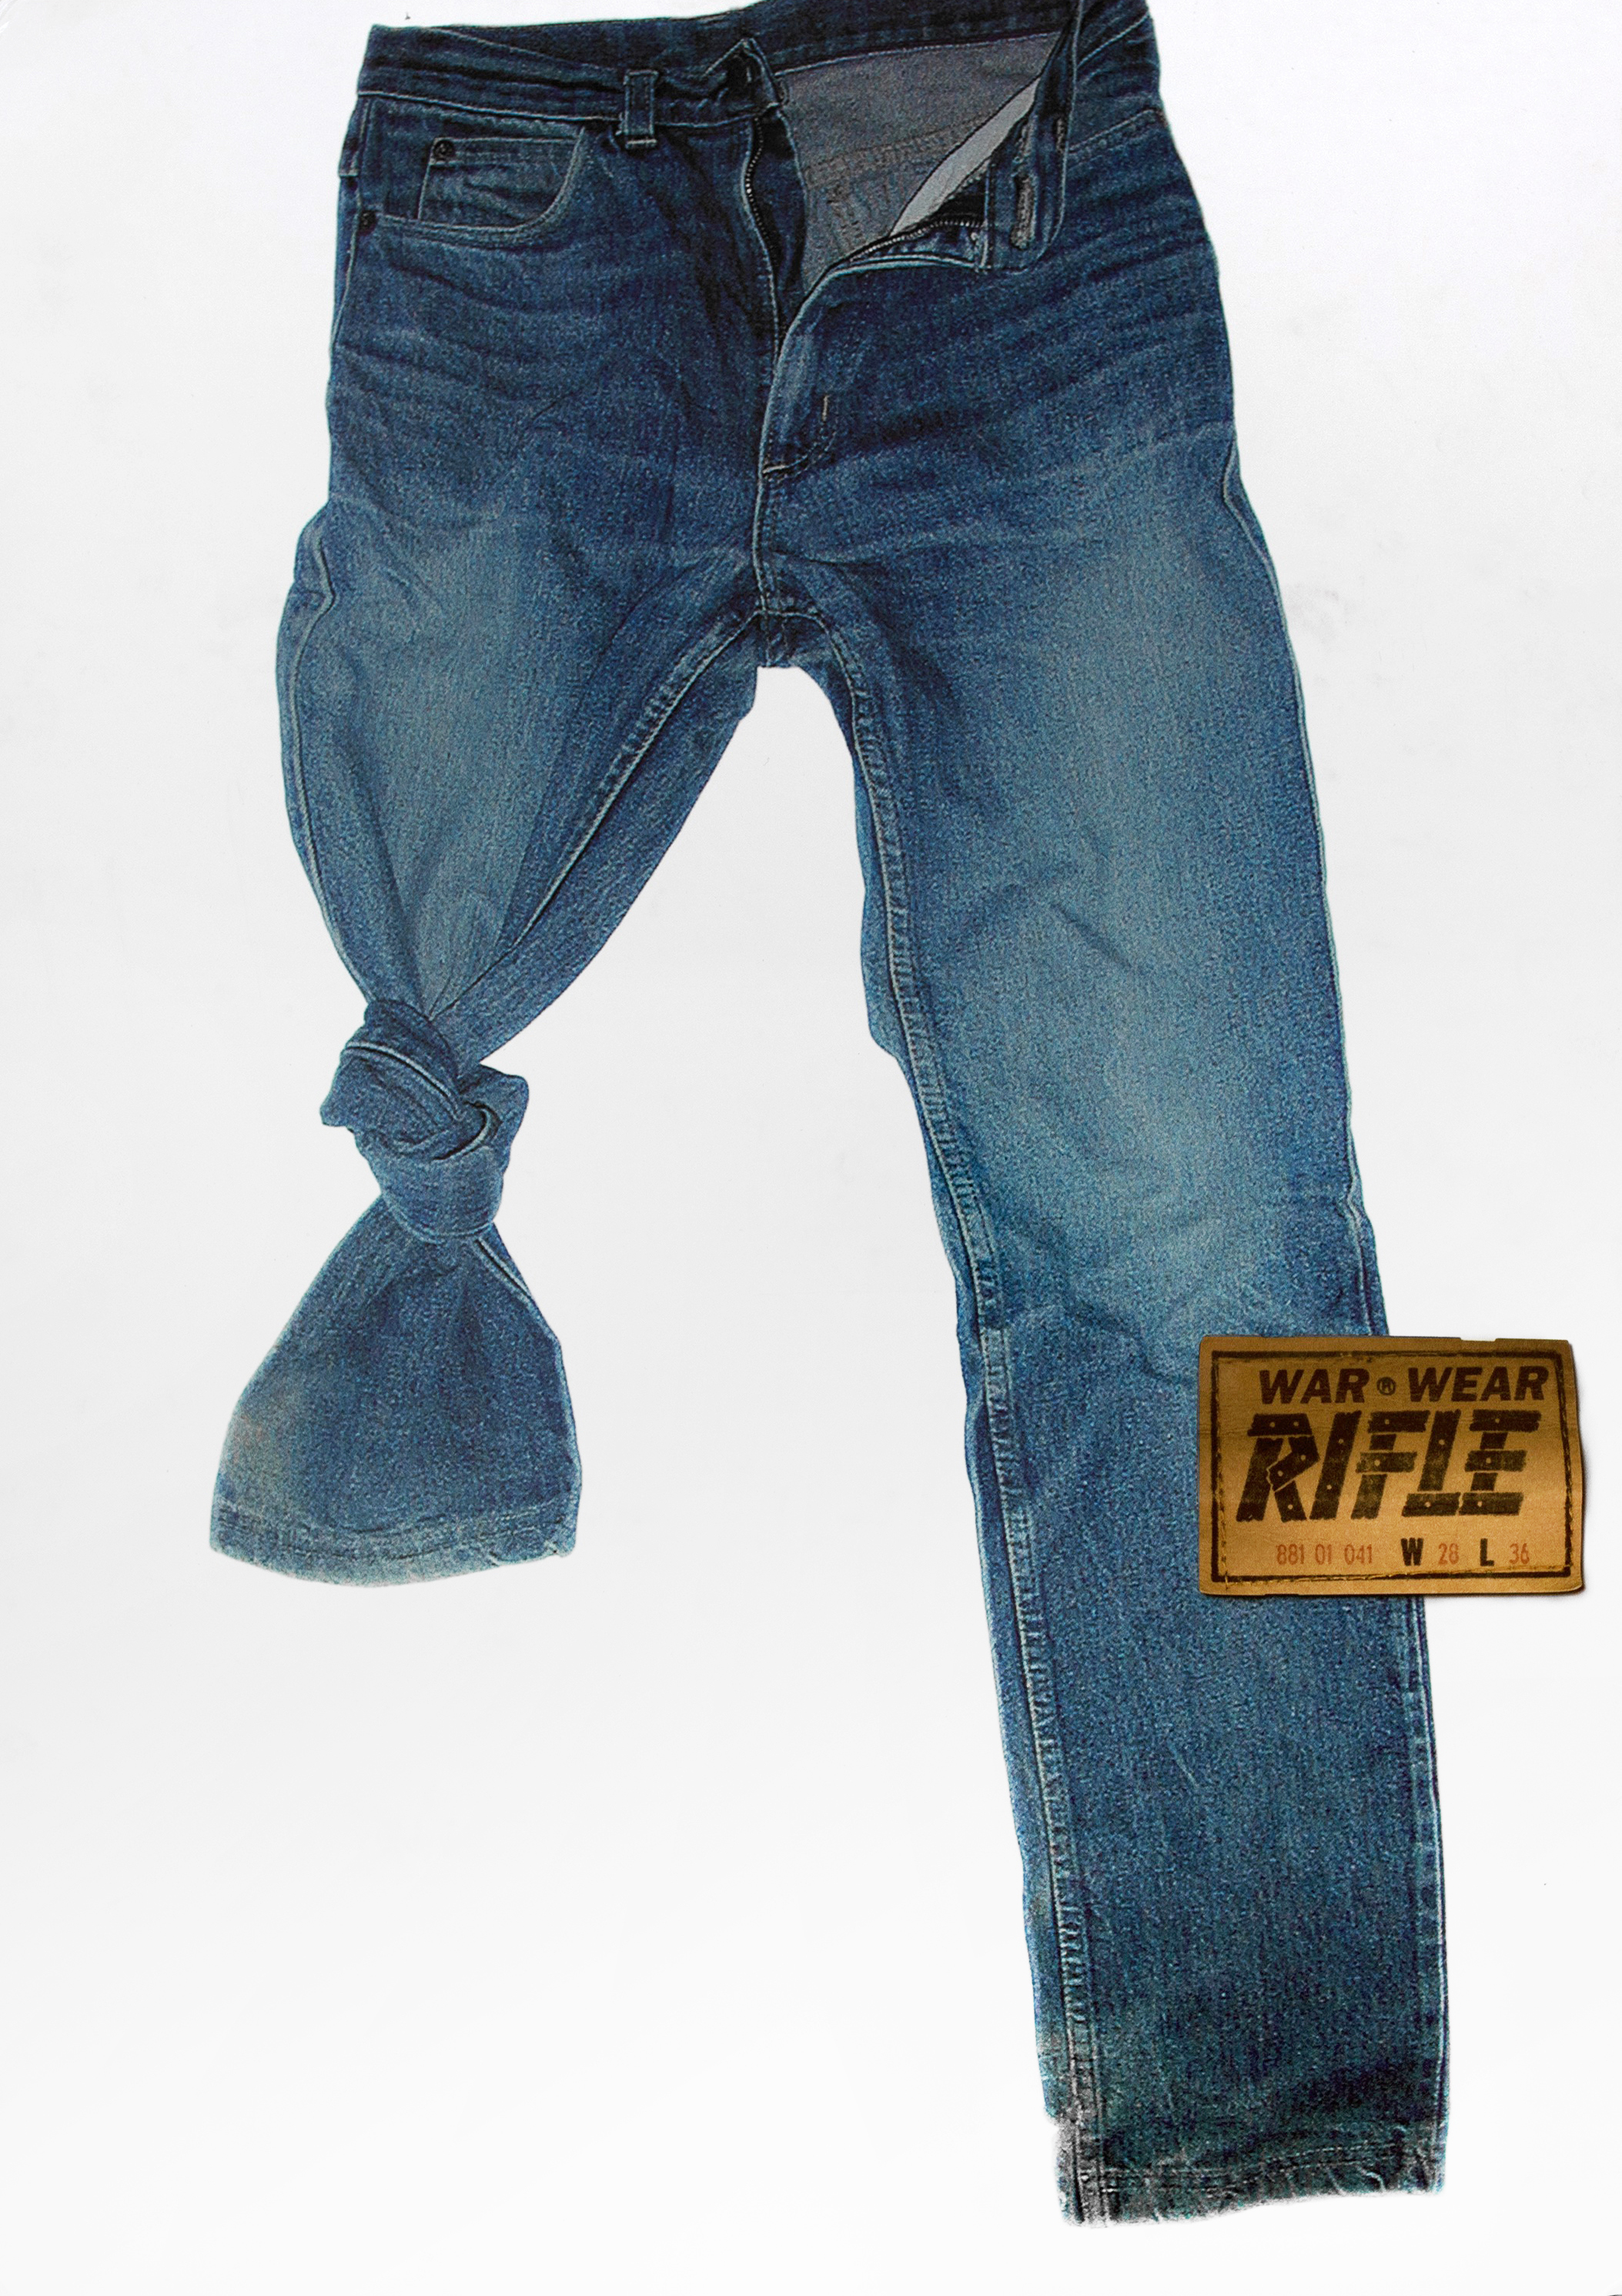 "A photograph of a pair of blue jeans against a white background. One leg is knotted at the knee, implying the intended wearer has lost part of their leg. A large, Levi's-style patch reads, ""War Wear, Rifle, 881 01 041 W 28 L 36."""